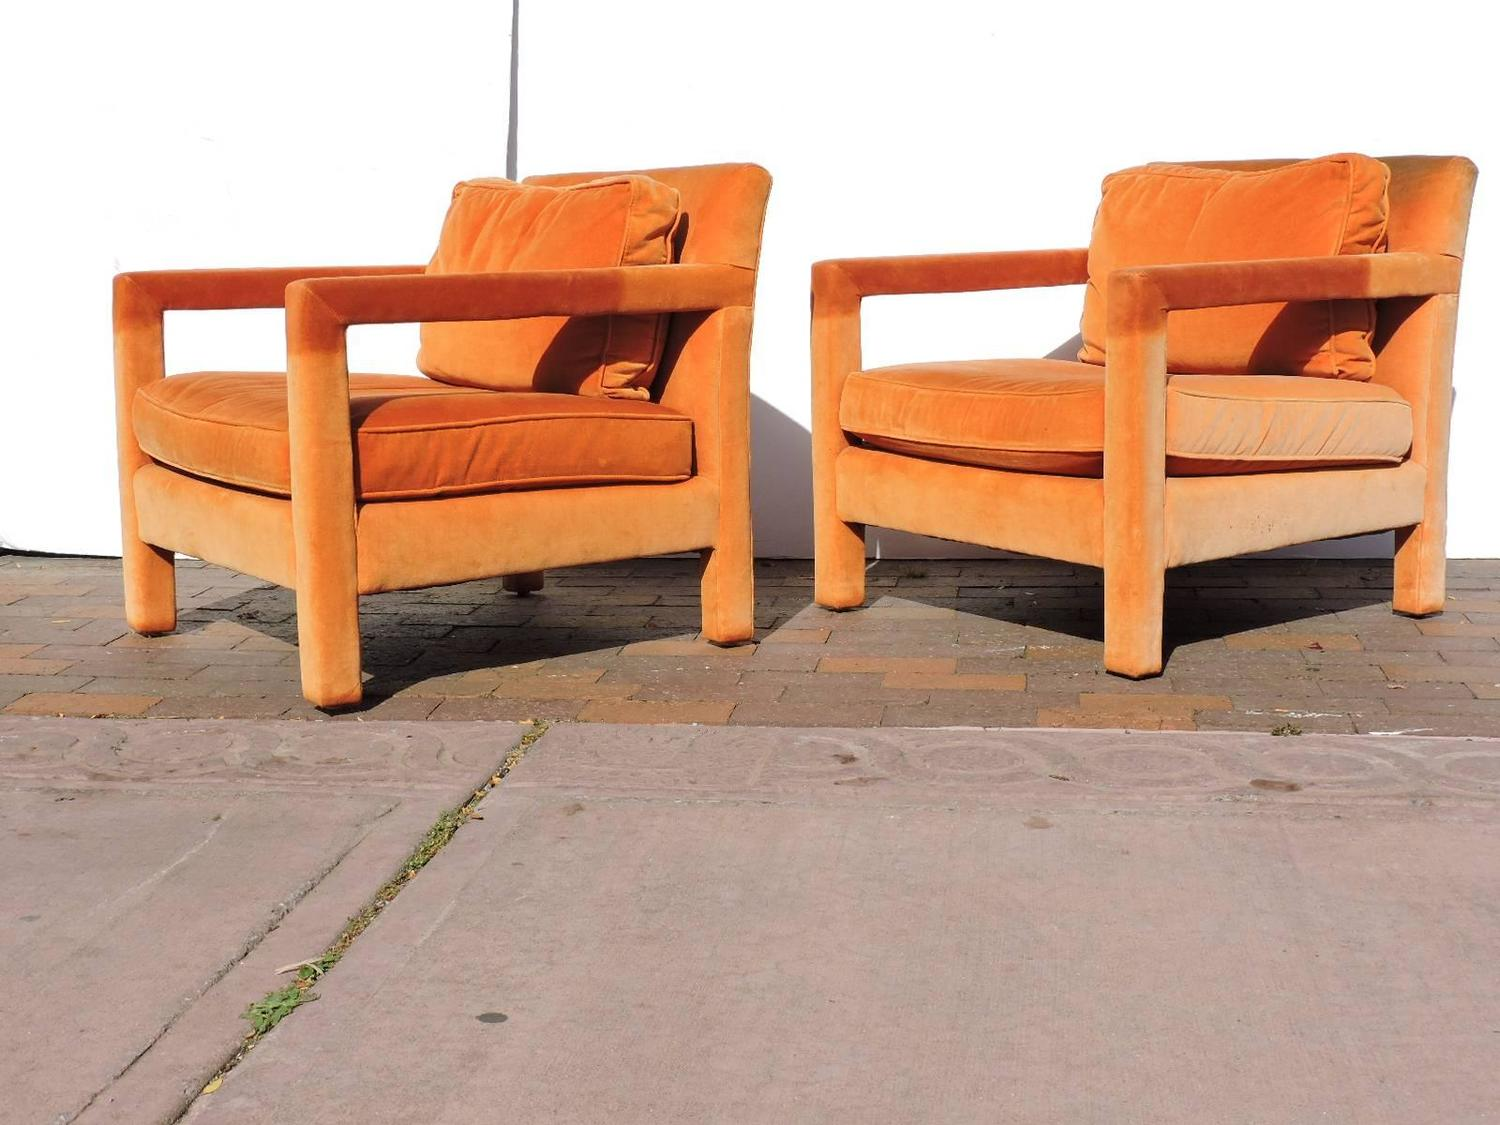 orange parsons chair plus size folding chairs uk upholstered lounge in the style of